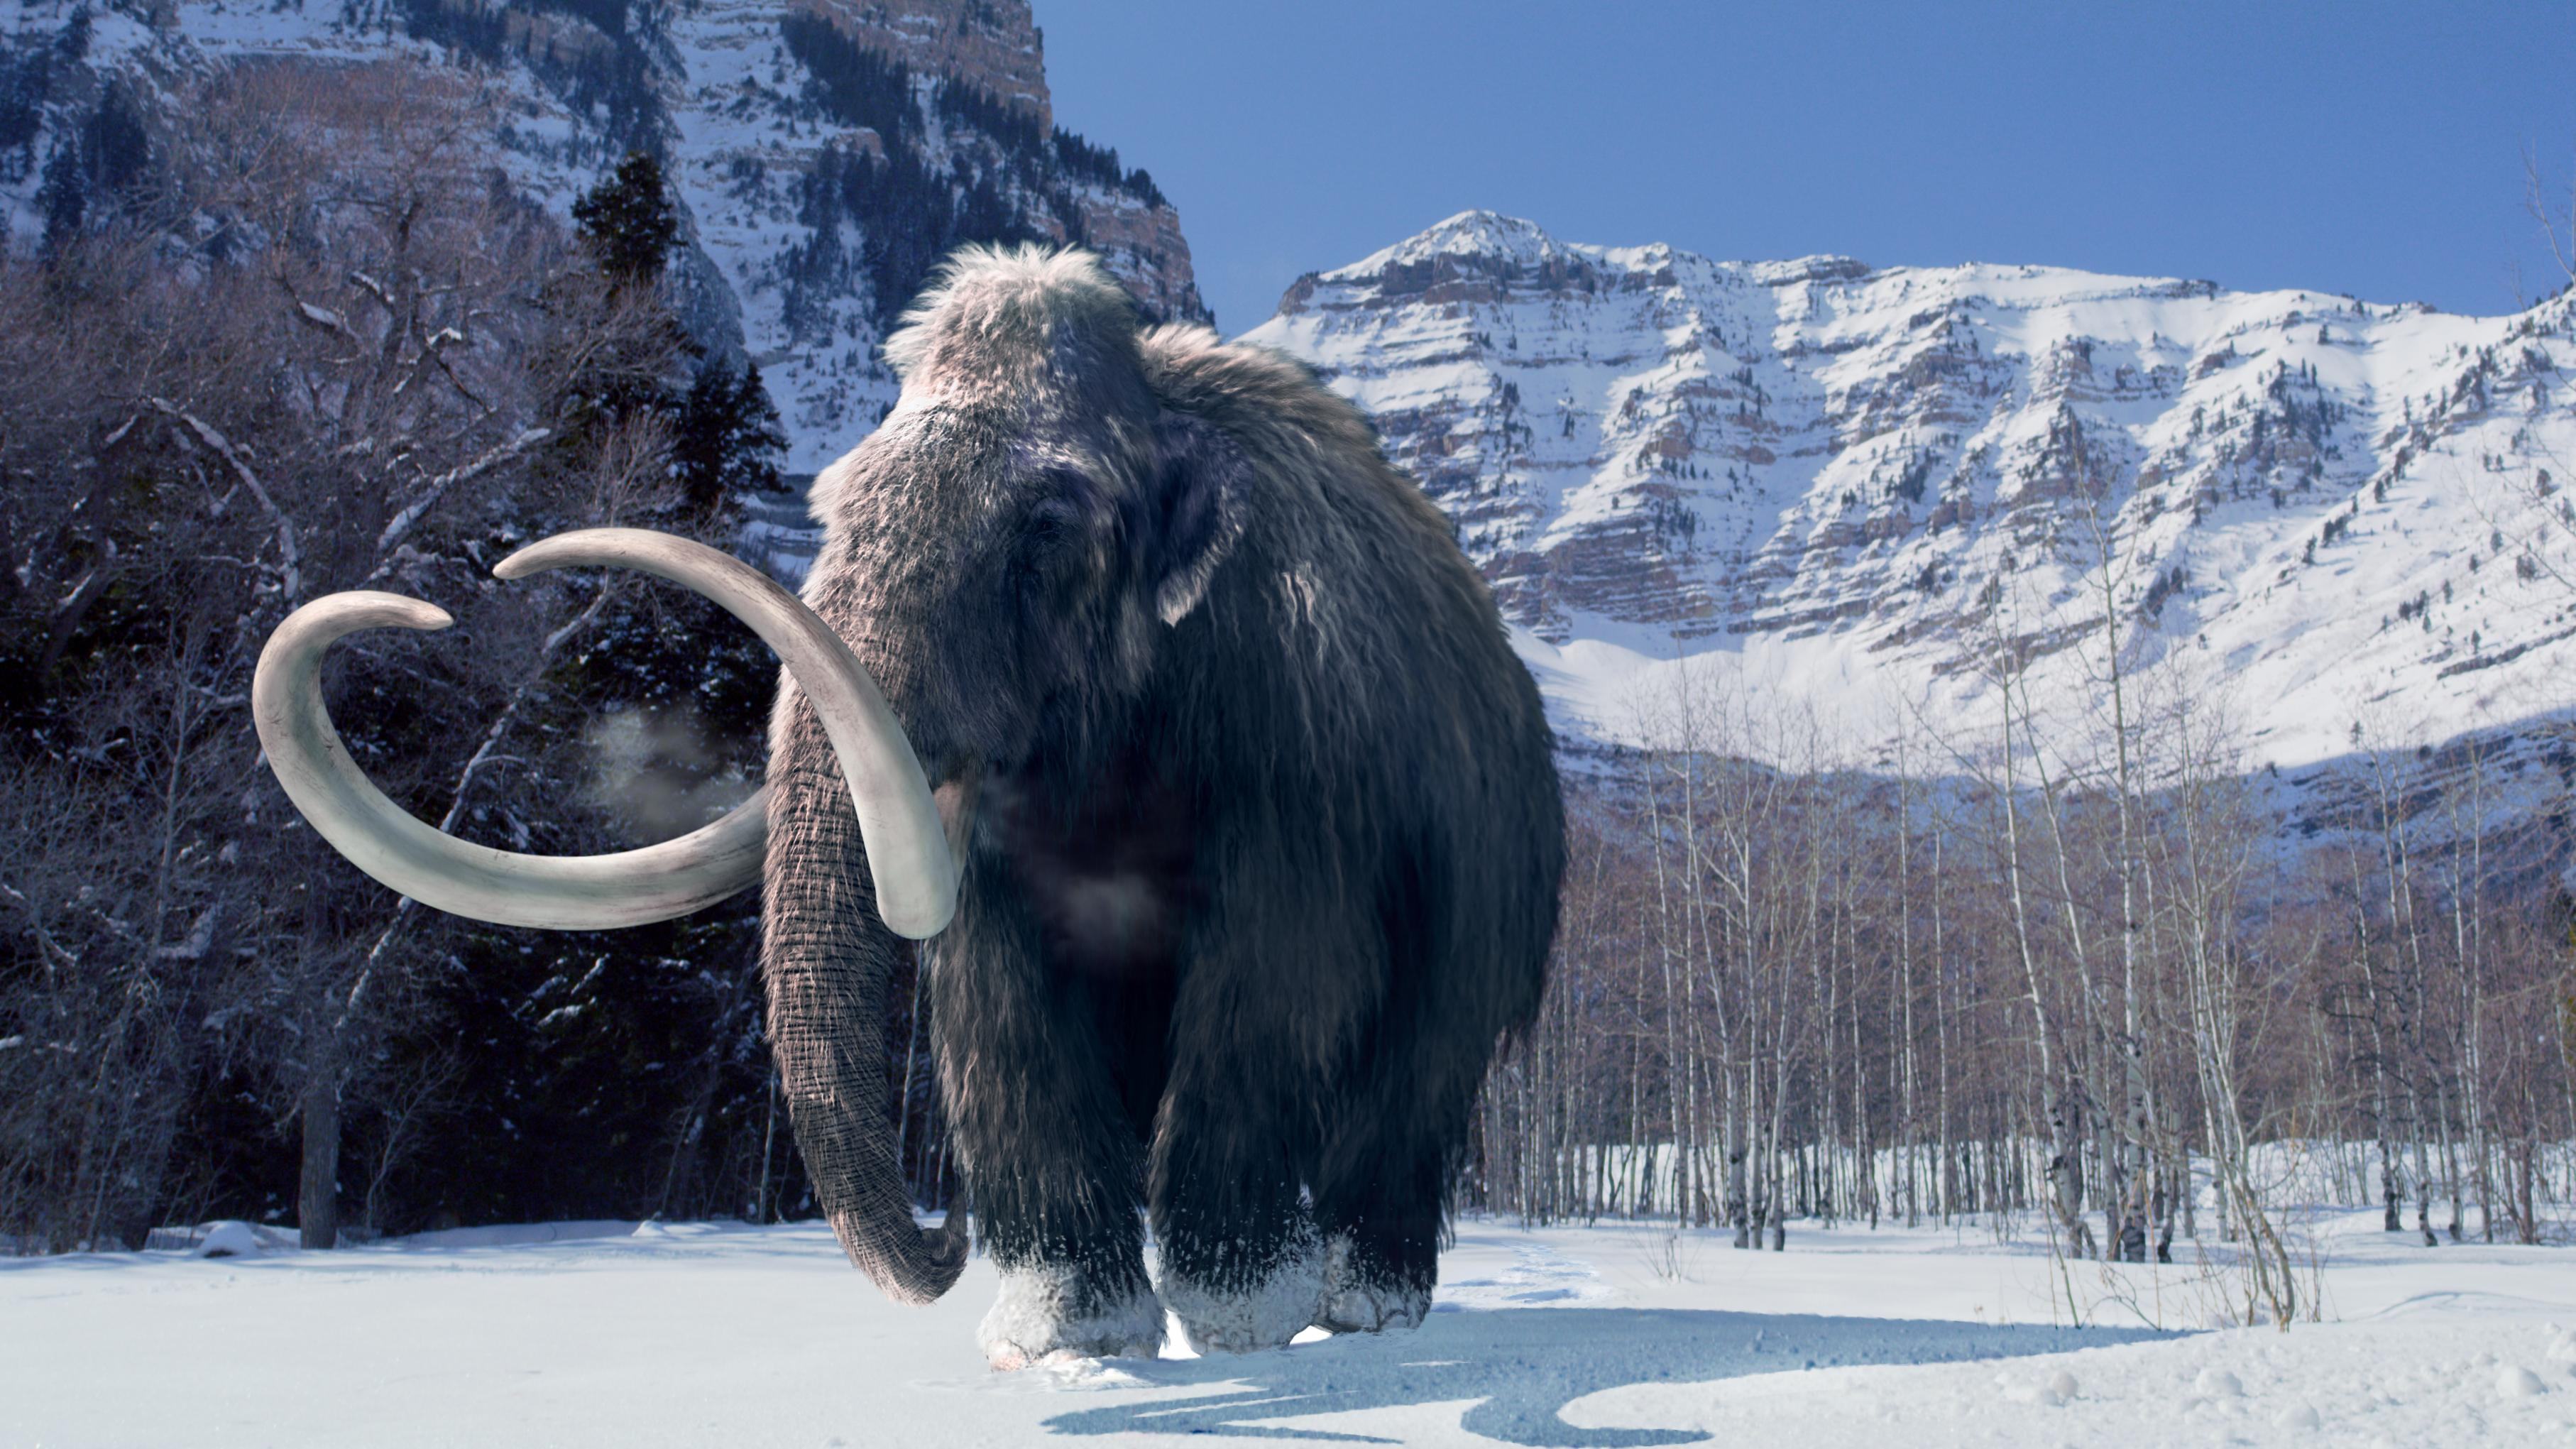 It's just a picture of Playful Ice Ages Pictures